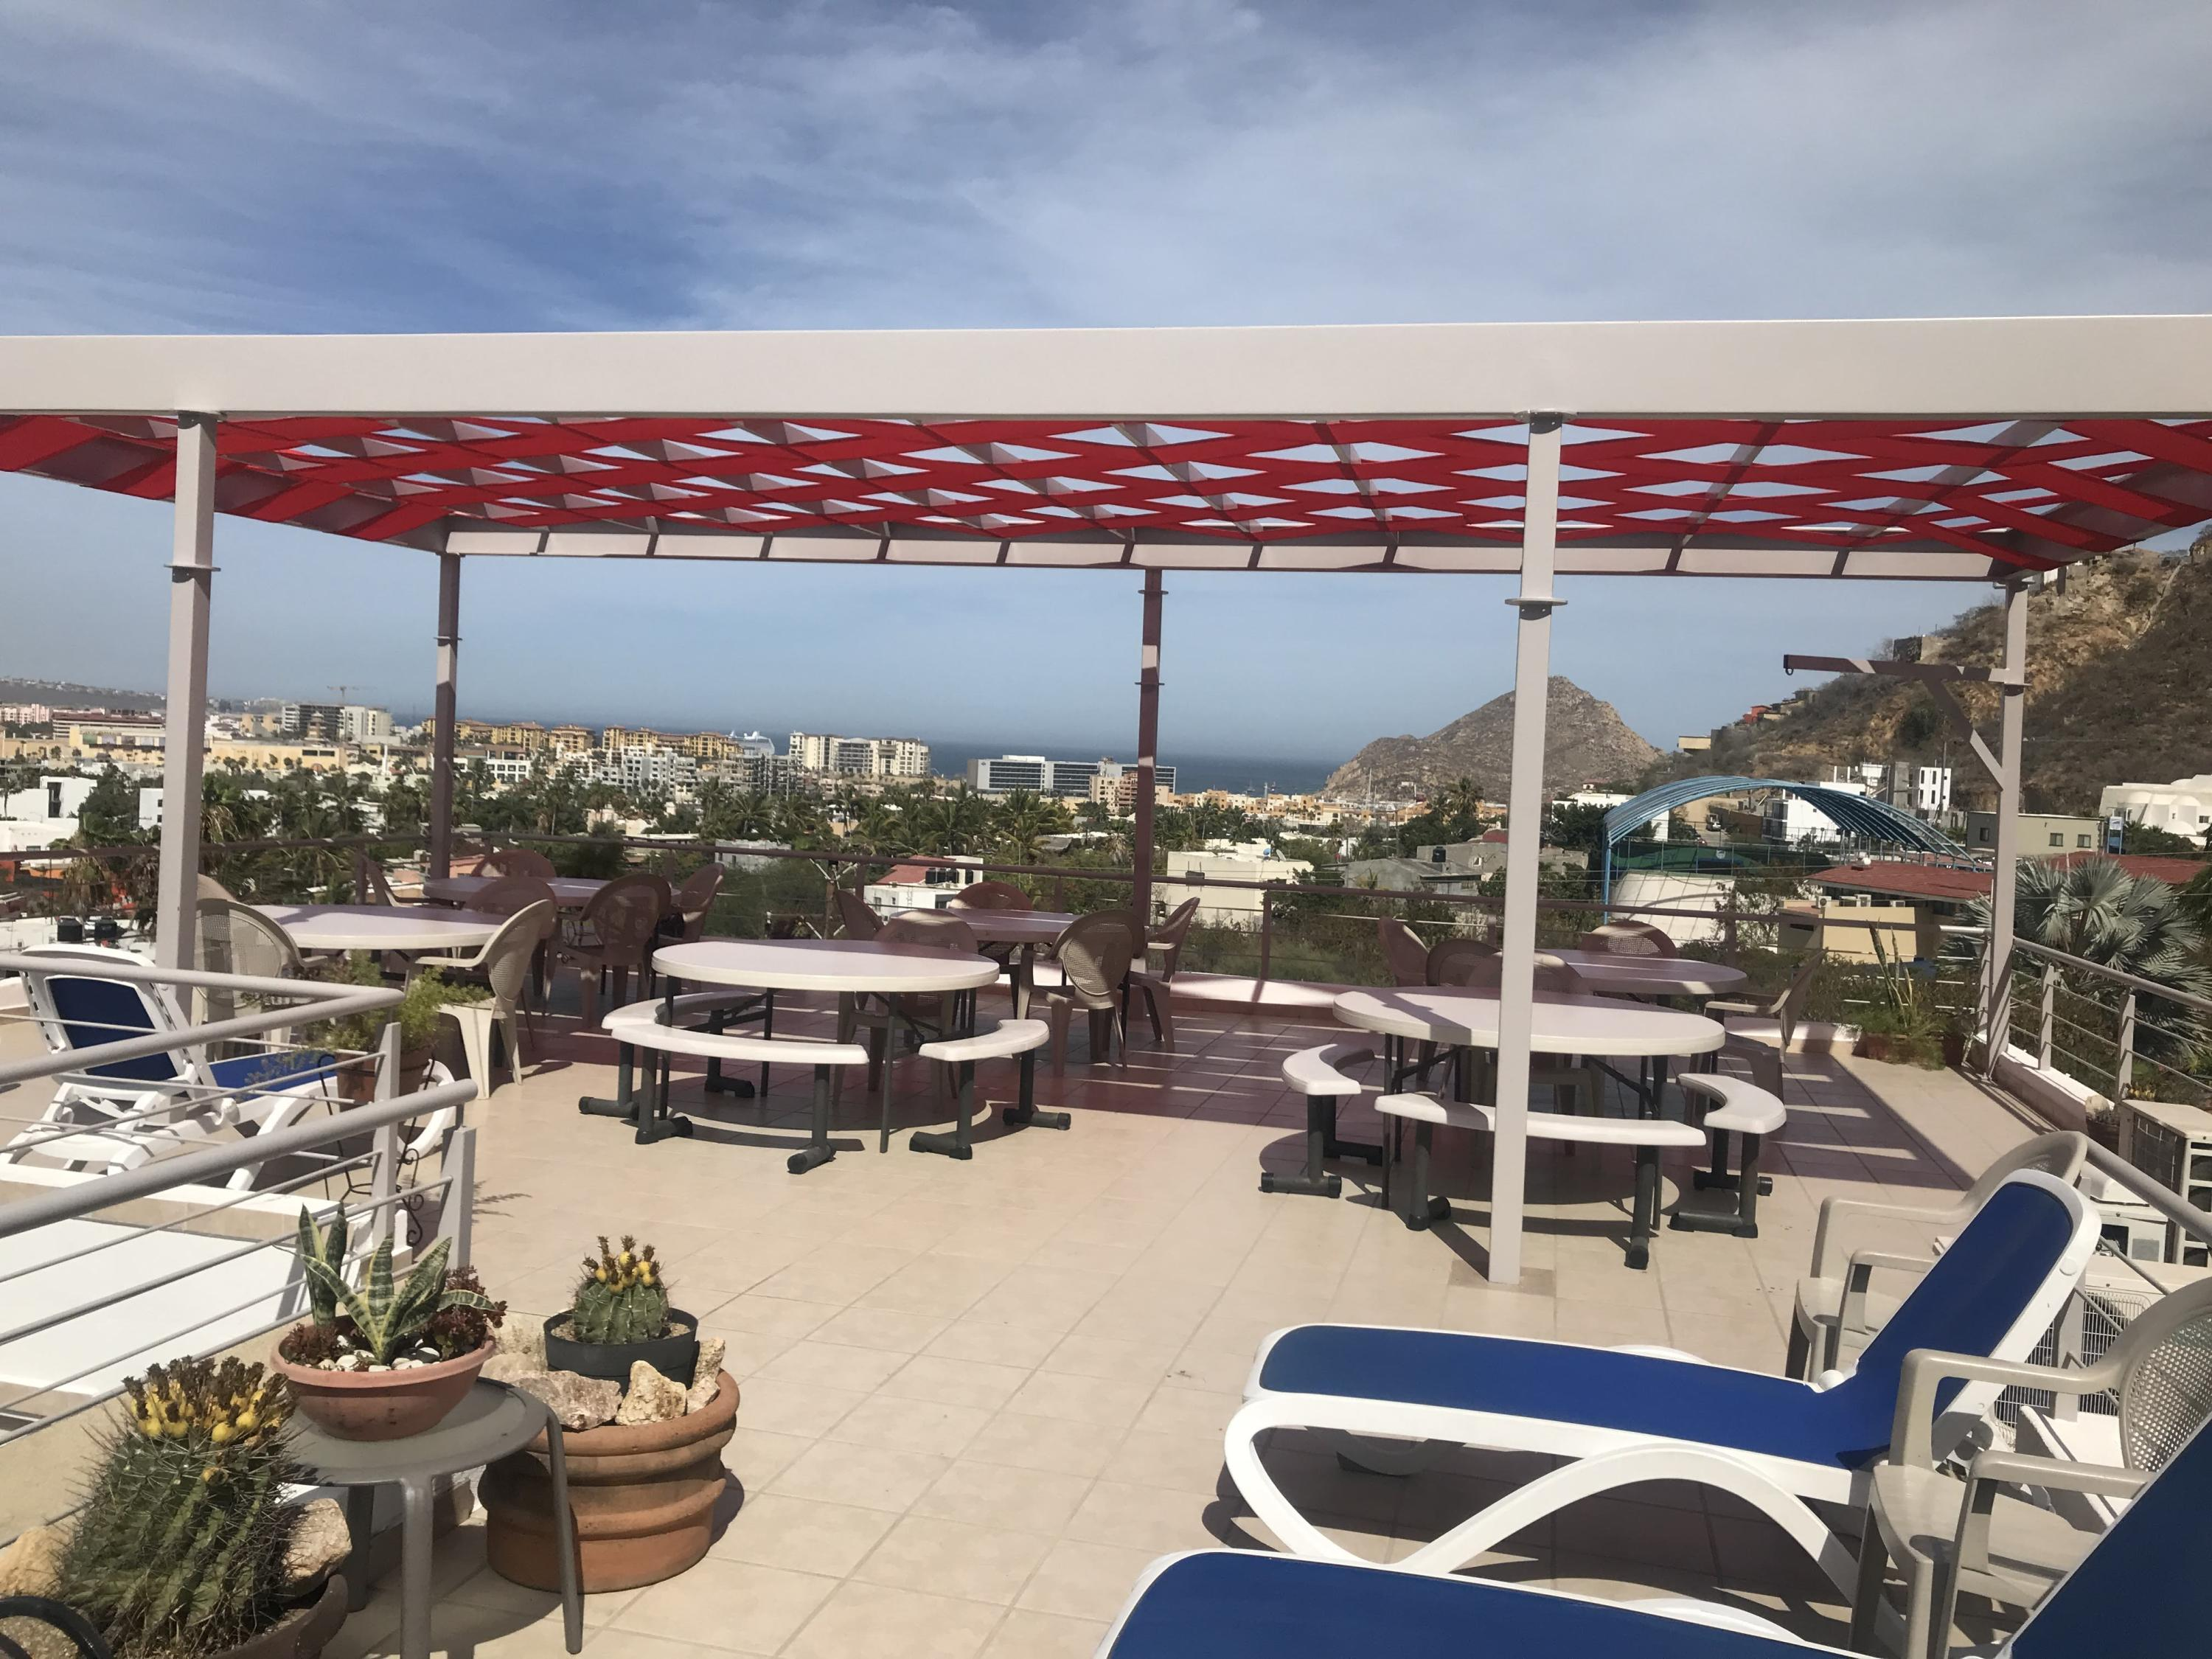 Cabo San Lucas, ,Commercial,For Sale,Lote 8 Mz 230, Libertad,19-1454